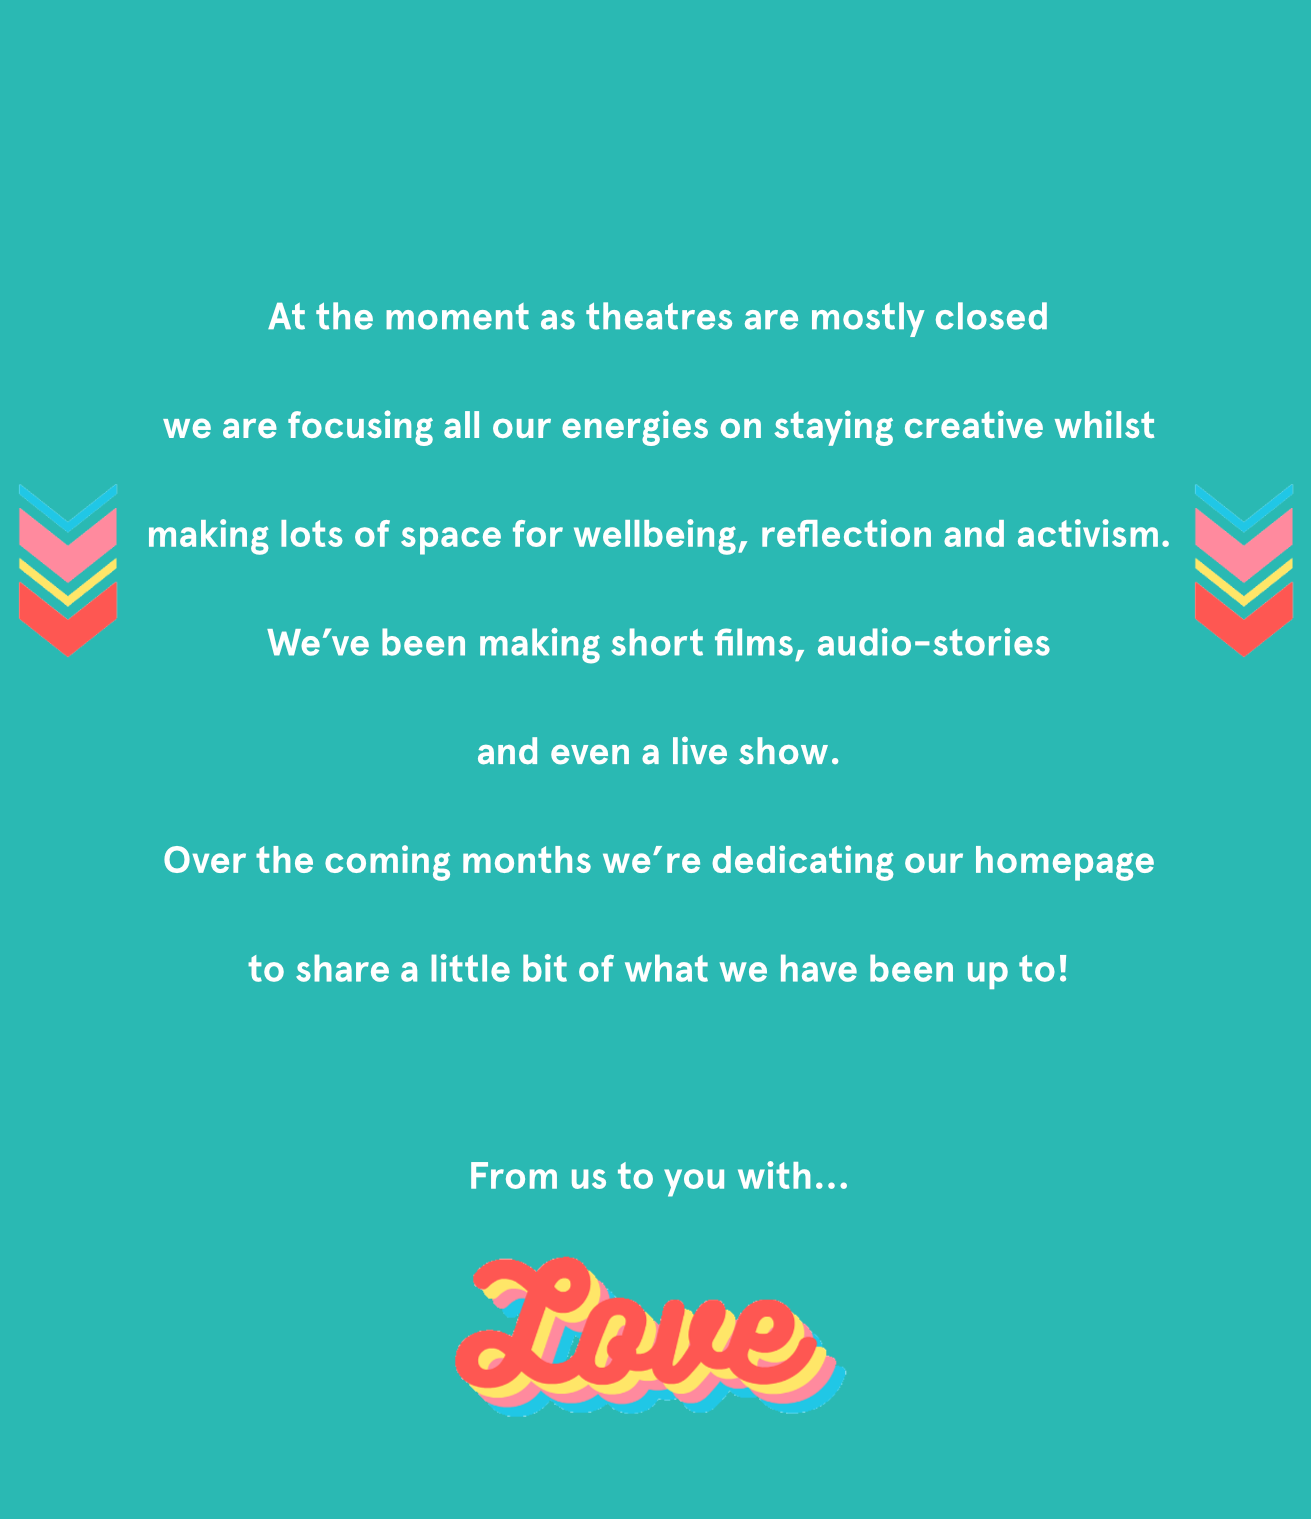 At the moment as theatres are mostly closed